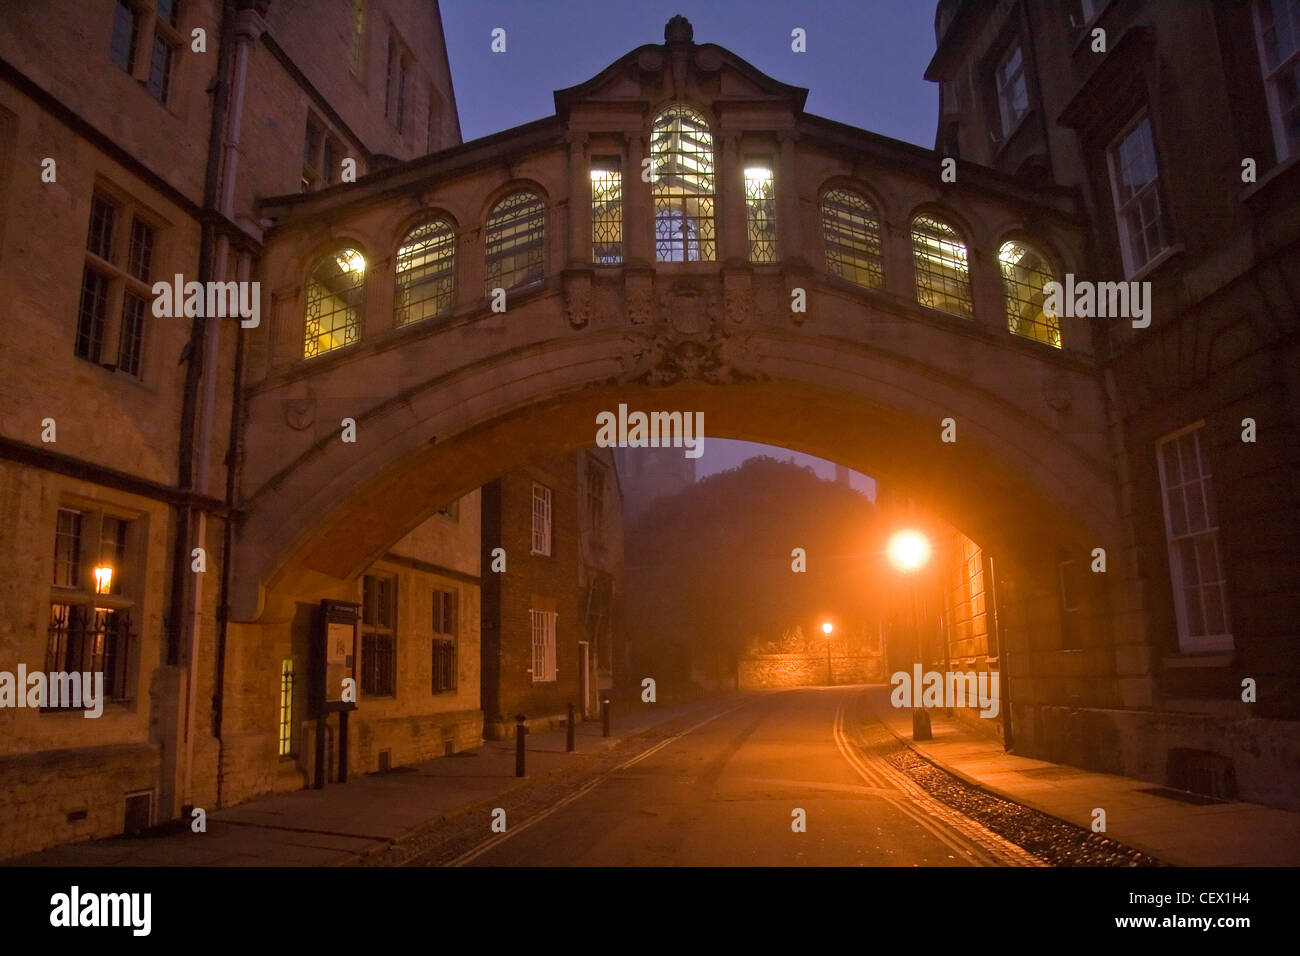 The Hertford College Bridge of Sighs in Oxford before sunrise. - Stock Image